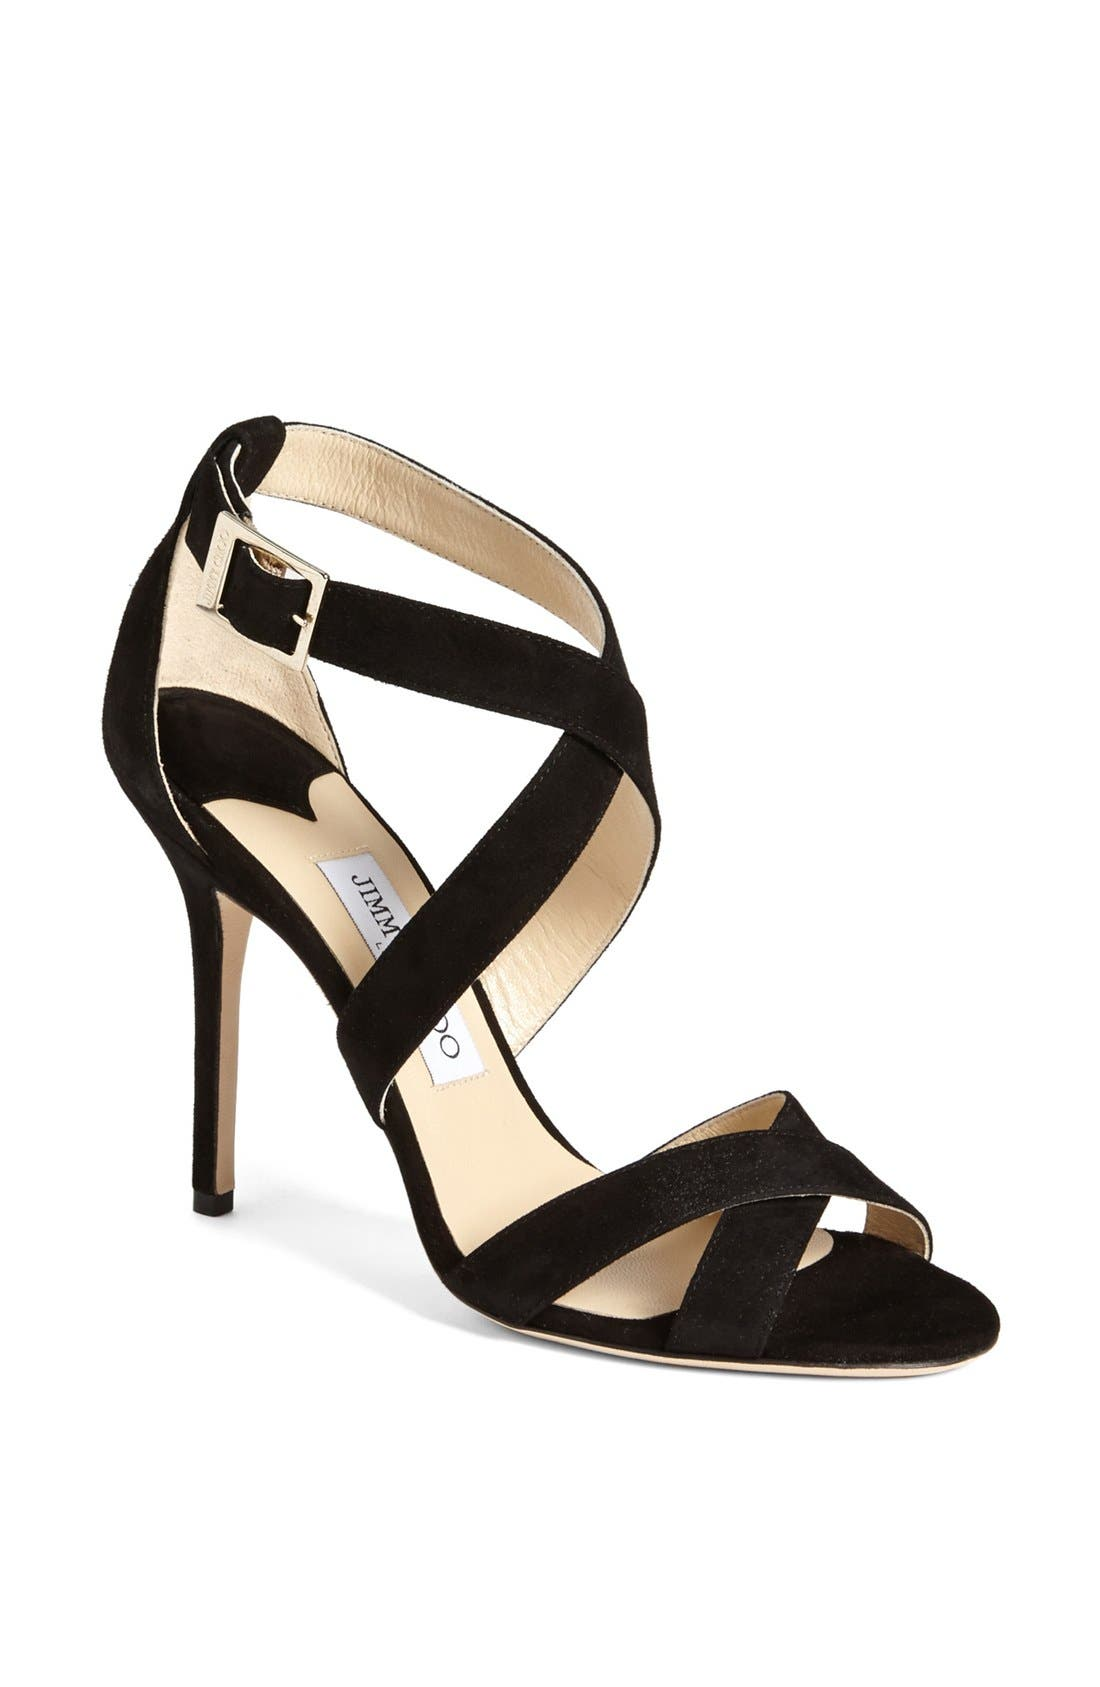 Main Image - Jimmy Choo 'Lottie' Sandal